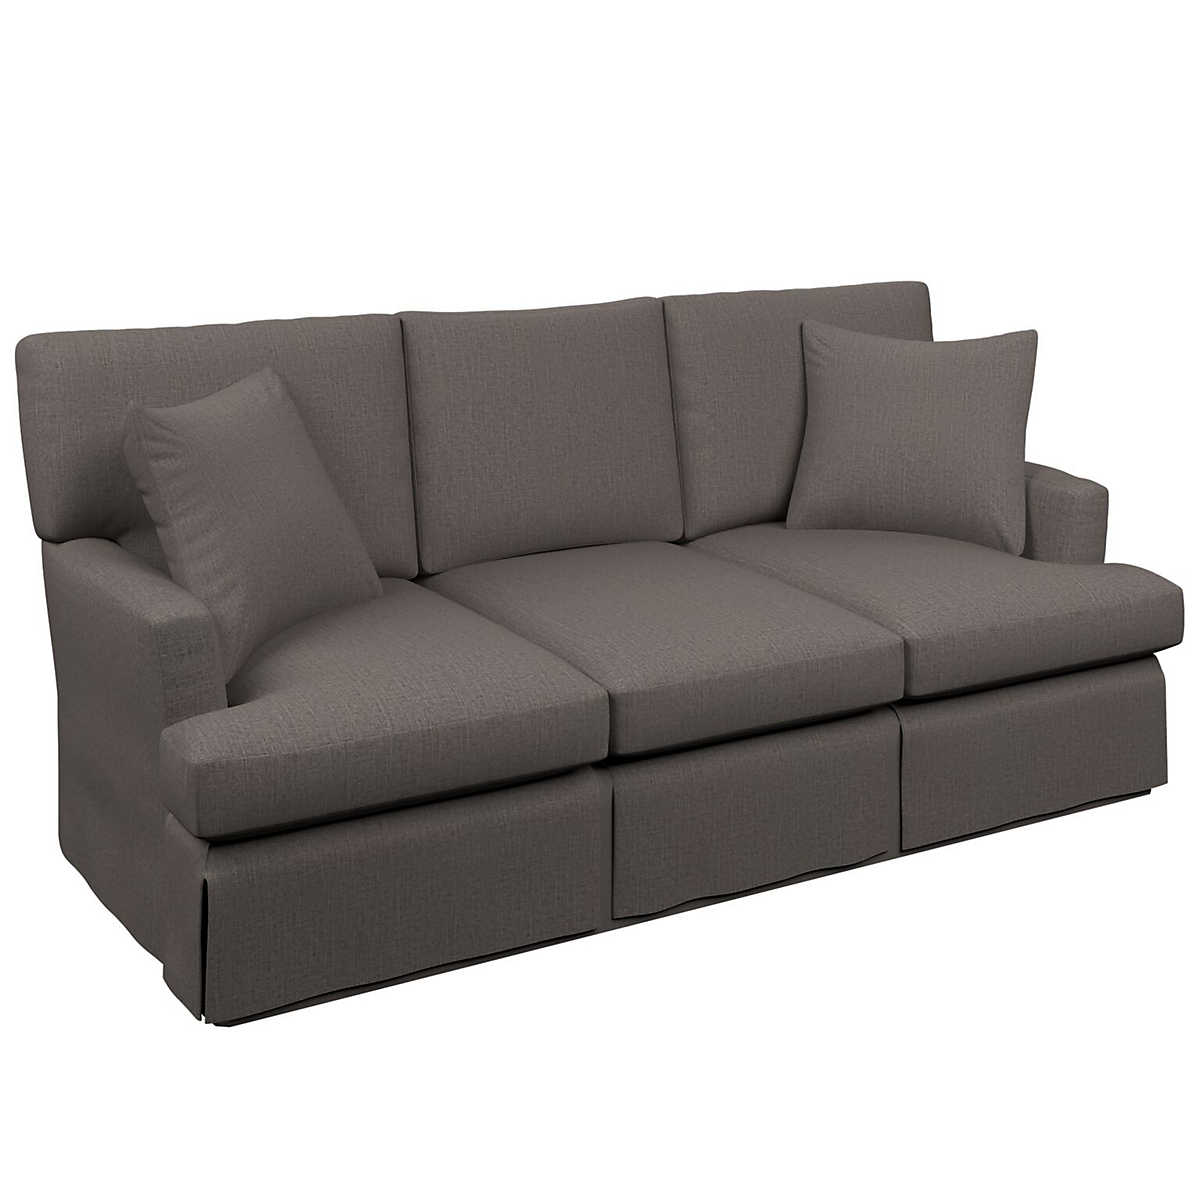 Canvasuede charcoal saybrook 3 seater sofa furniture for Shale sofa bed